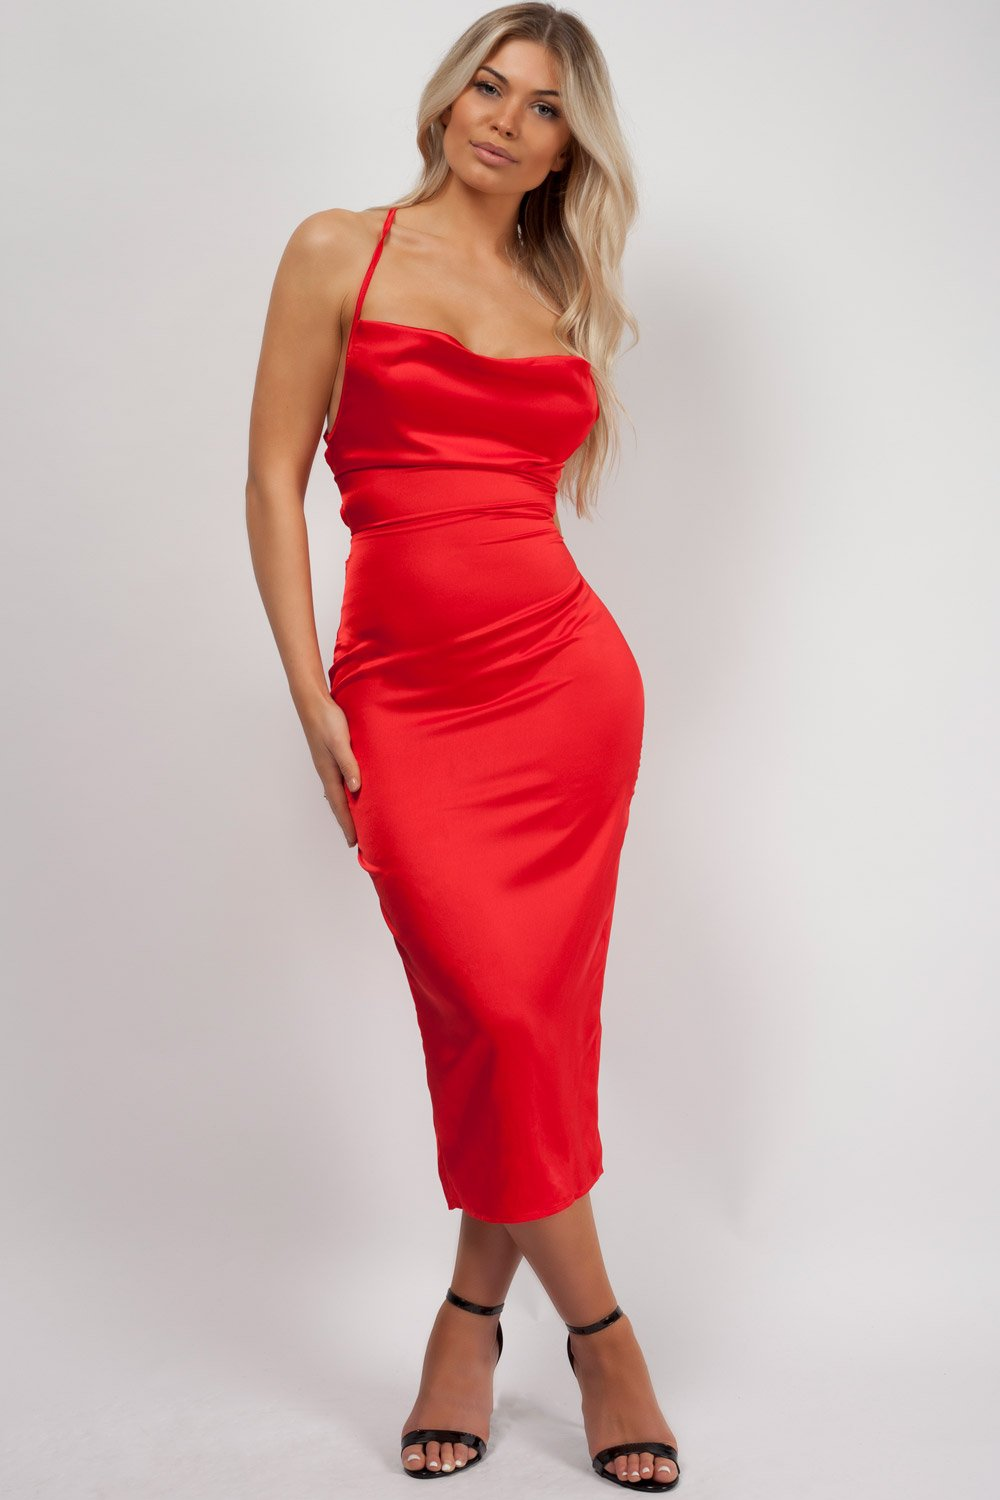 red satin midi dress styledup fashion